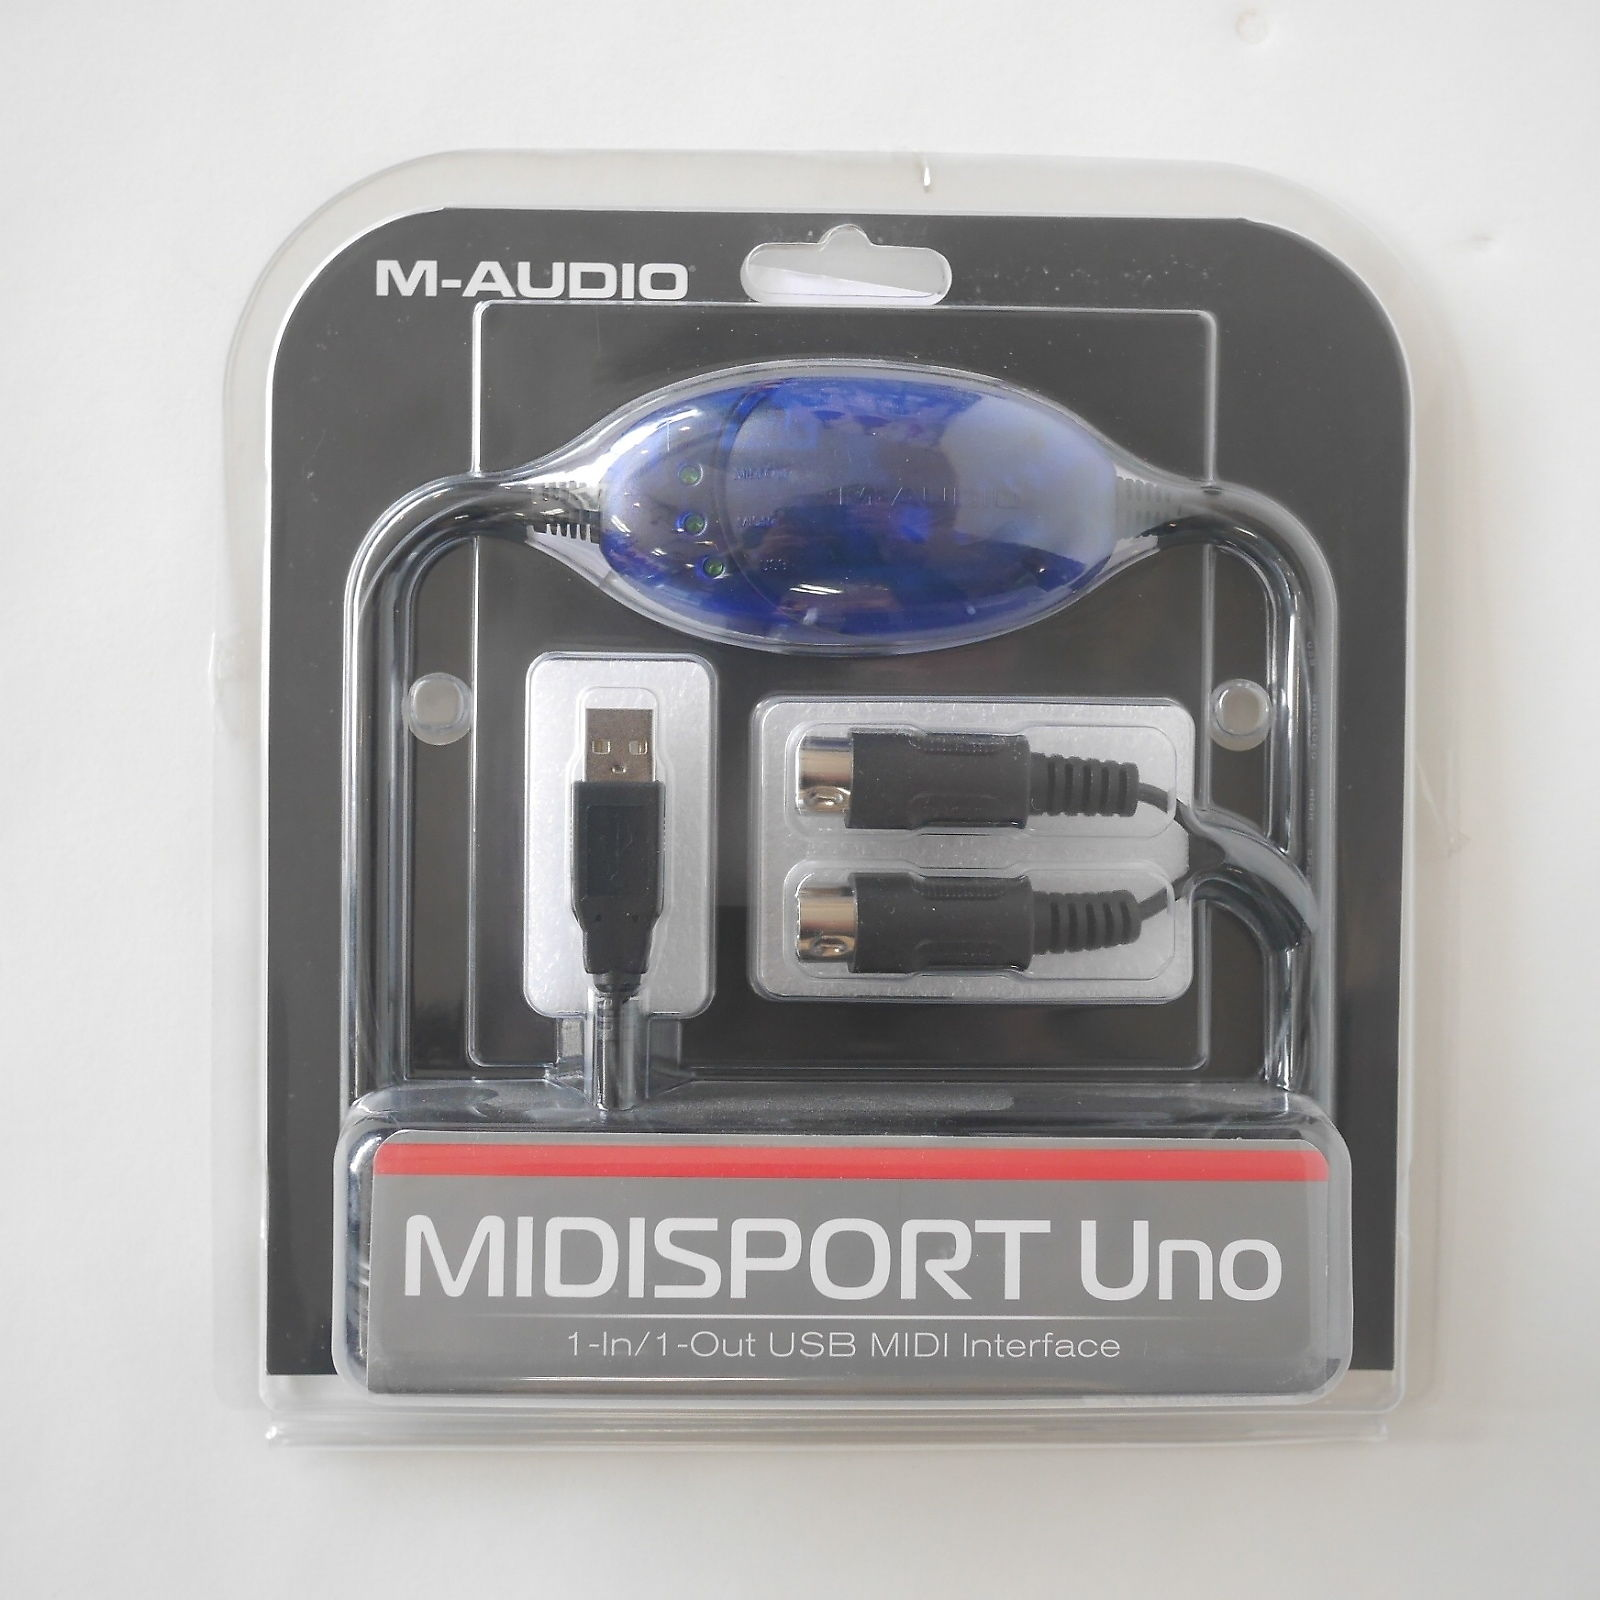 M AUDIO MIDISPORT UNO WINDOWS 8 DRIVERS DOWNLOAD (2019)